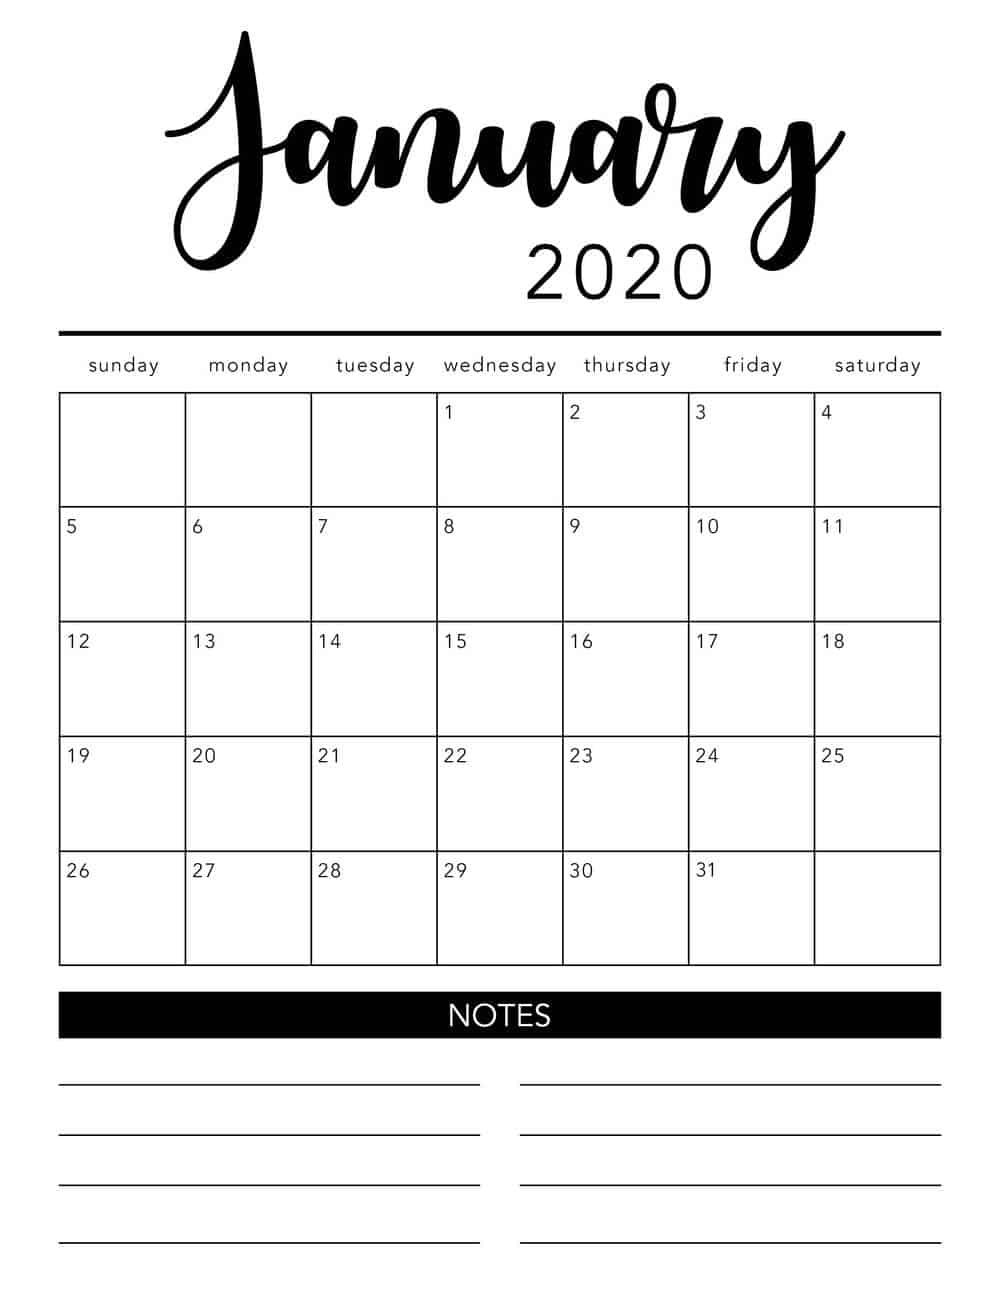 2020 Calendar Template 6 Months Per Page Images 842 Hp Month Calendar Printable